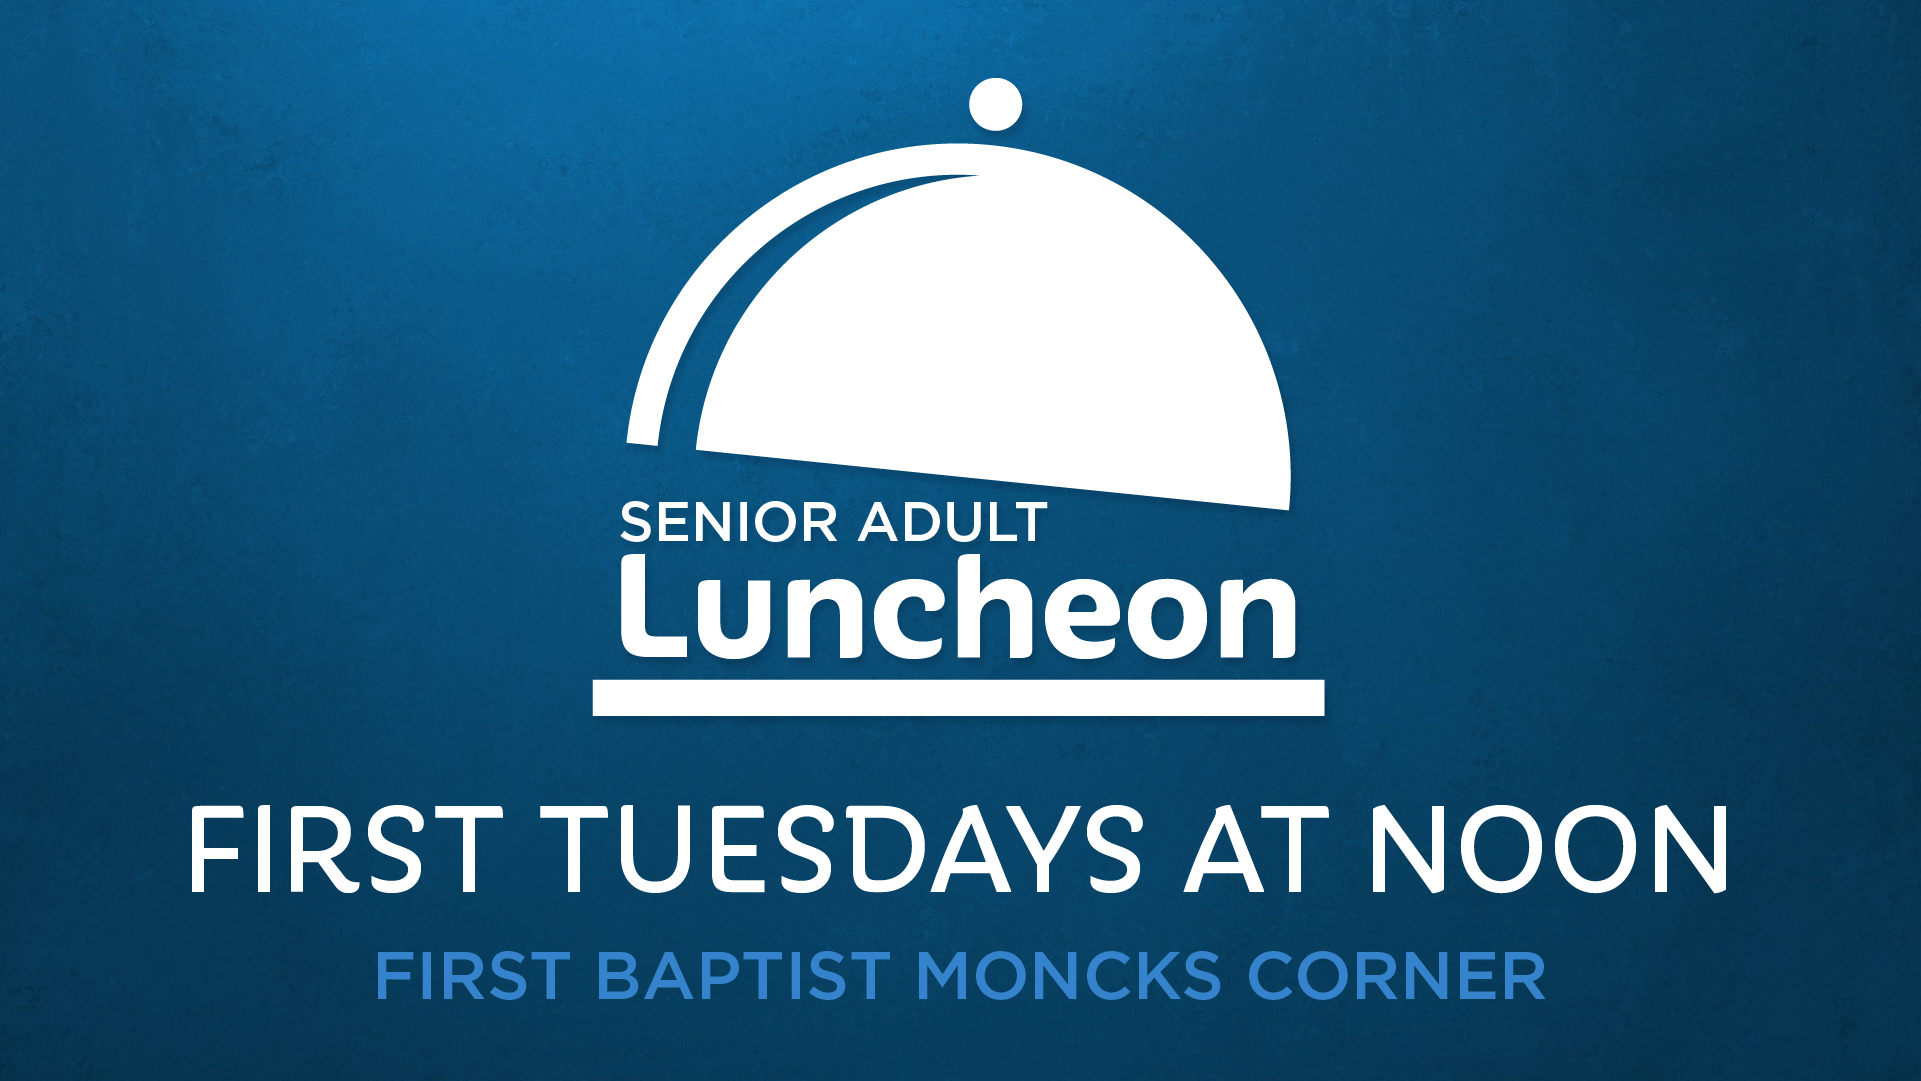 Senior Adult Luncheon